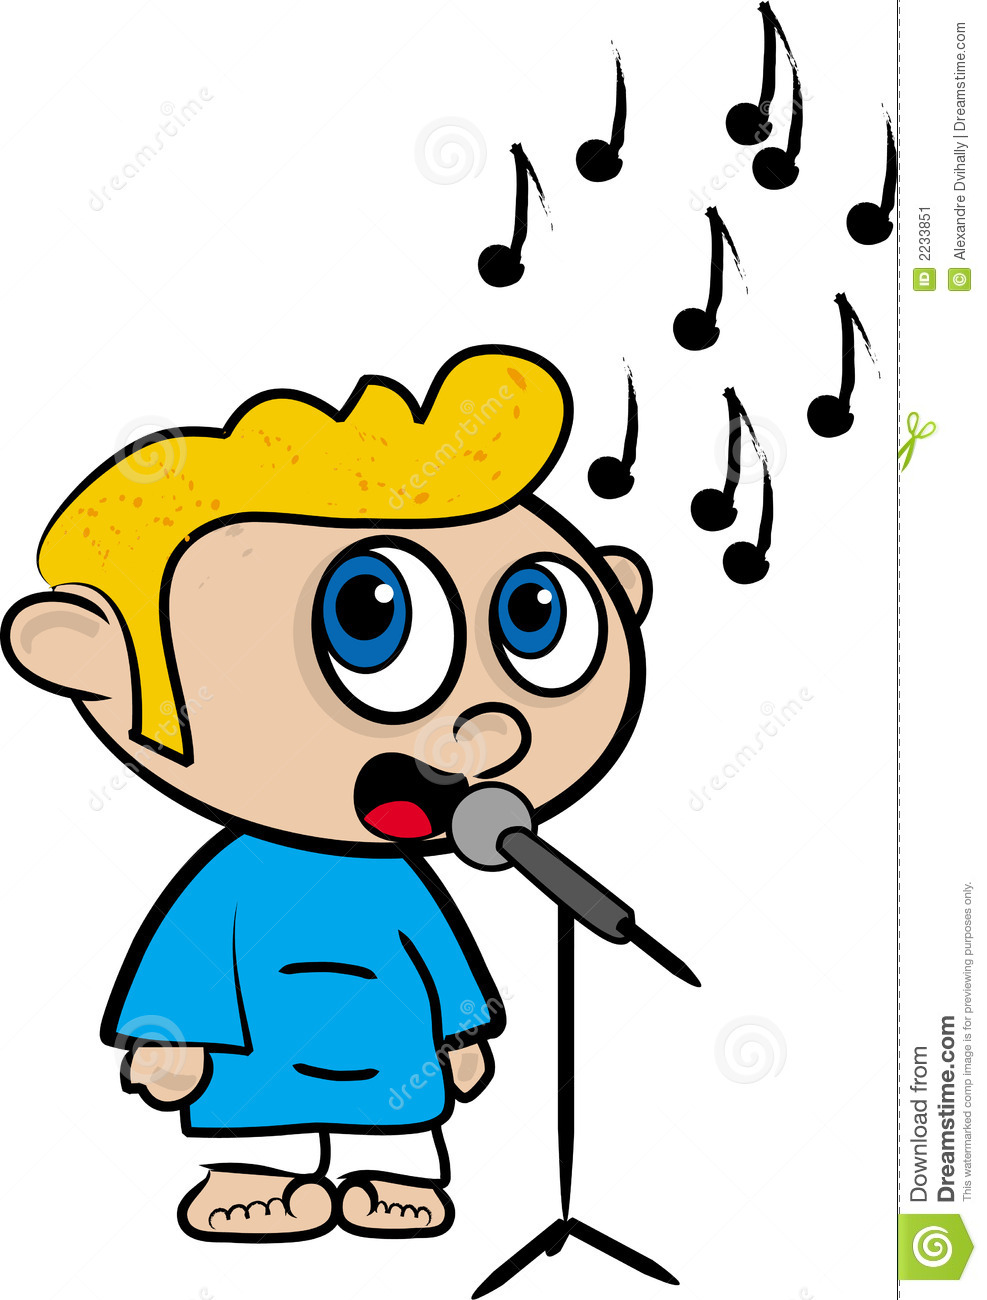 Dessin anim d 39 un gar on qui chante illustration stock - Dessin d un crapaud ...